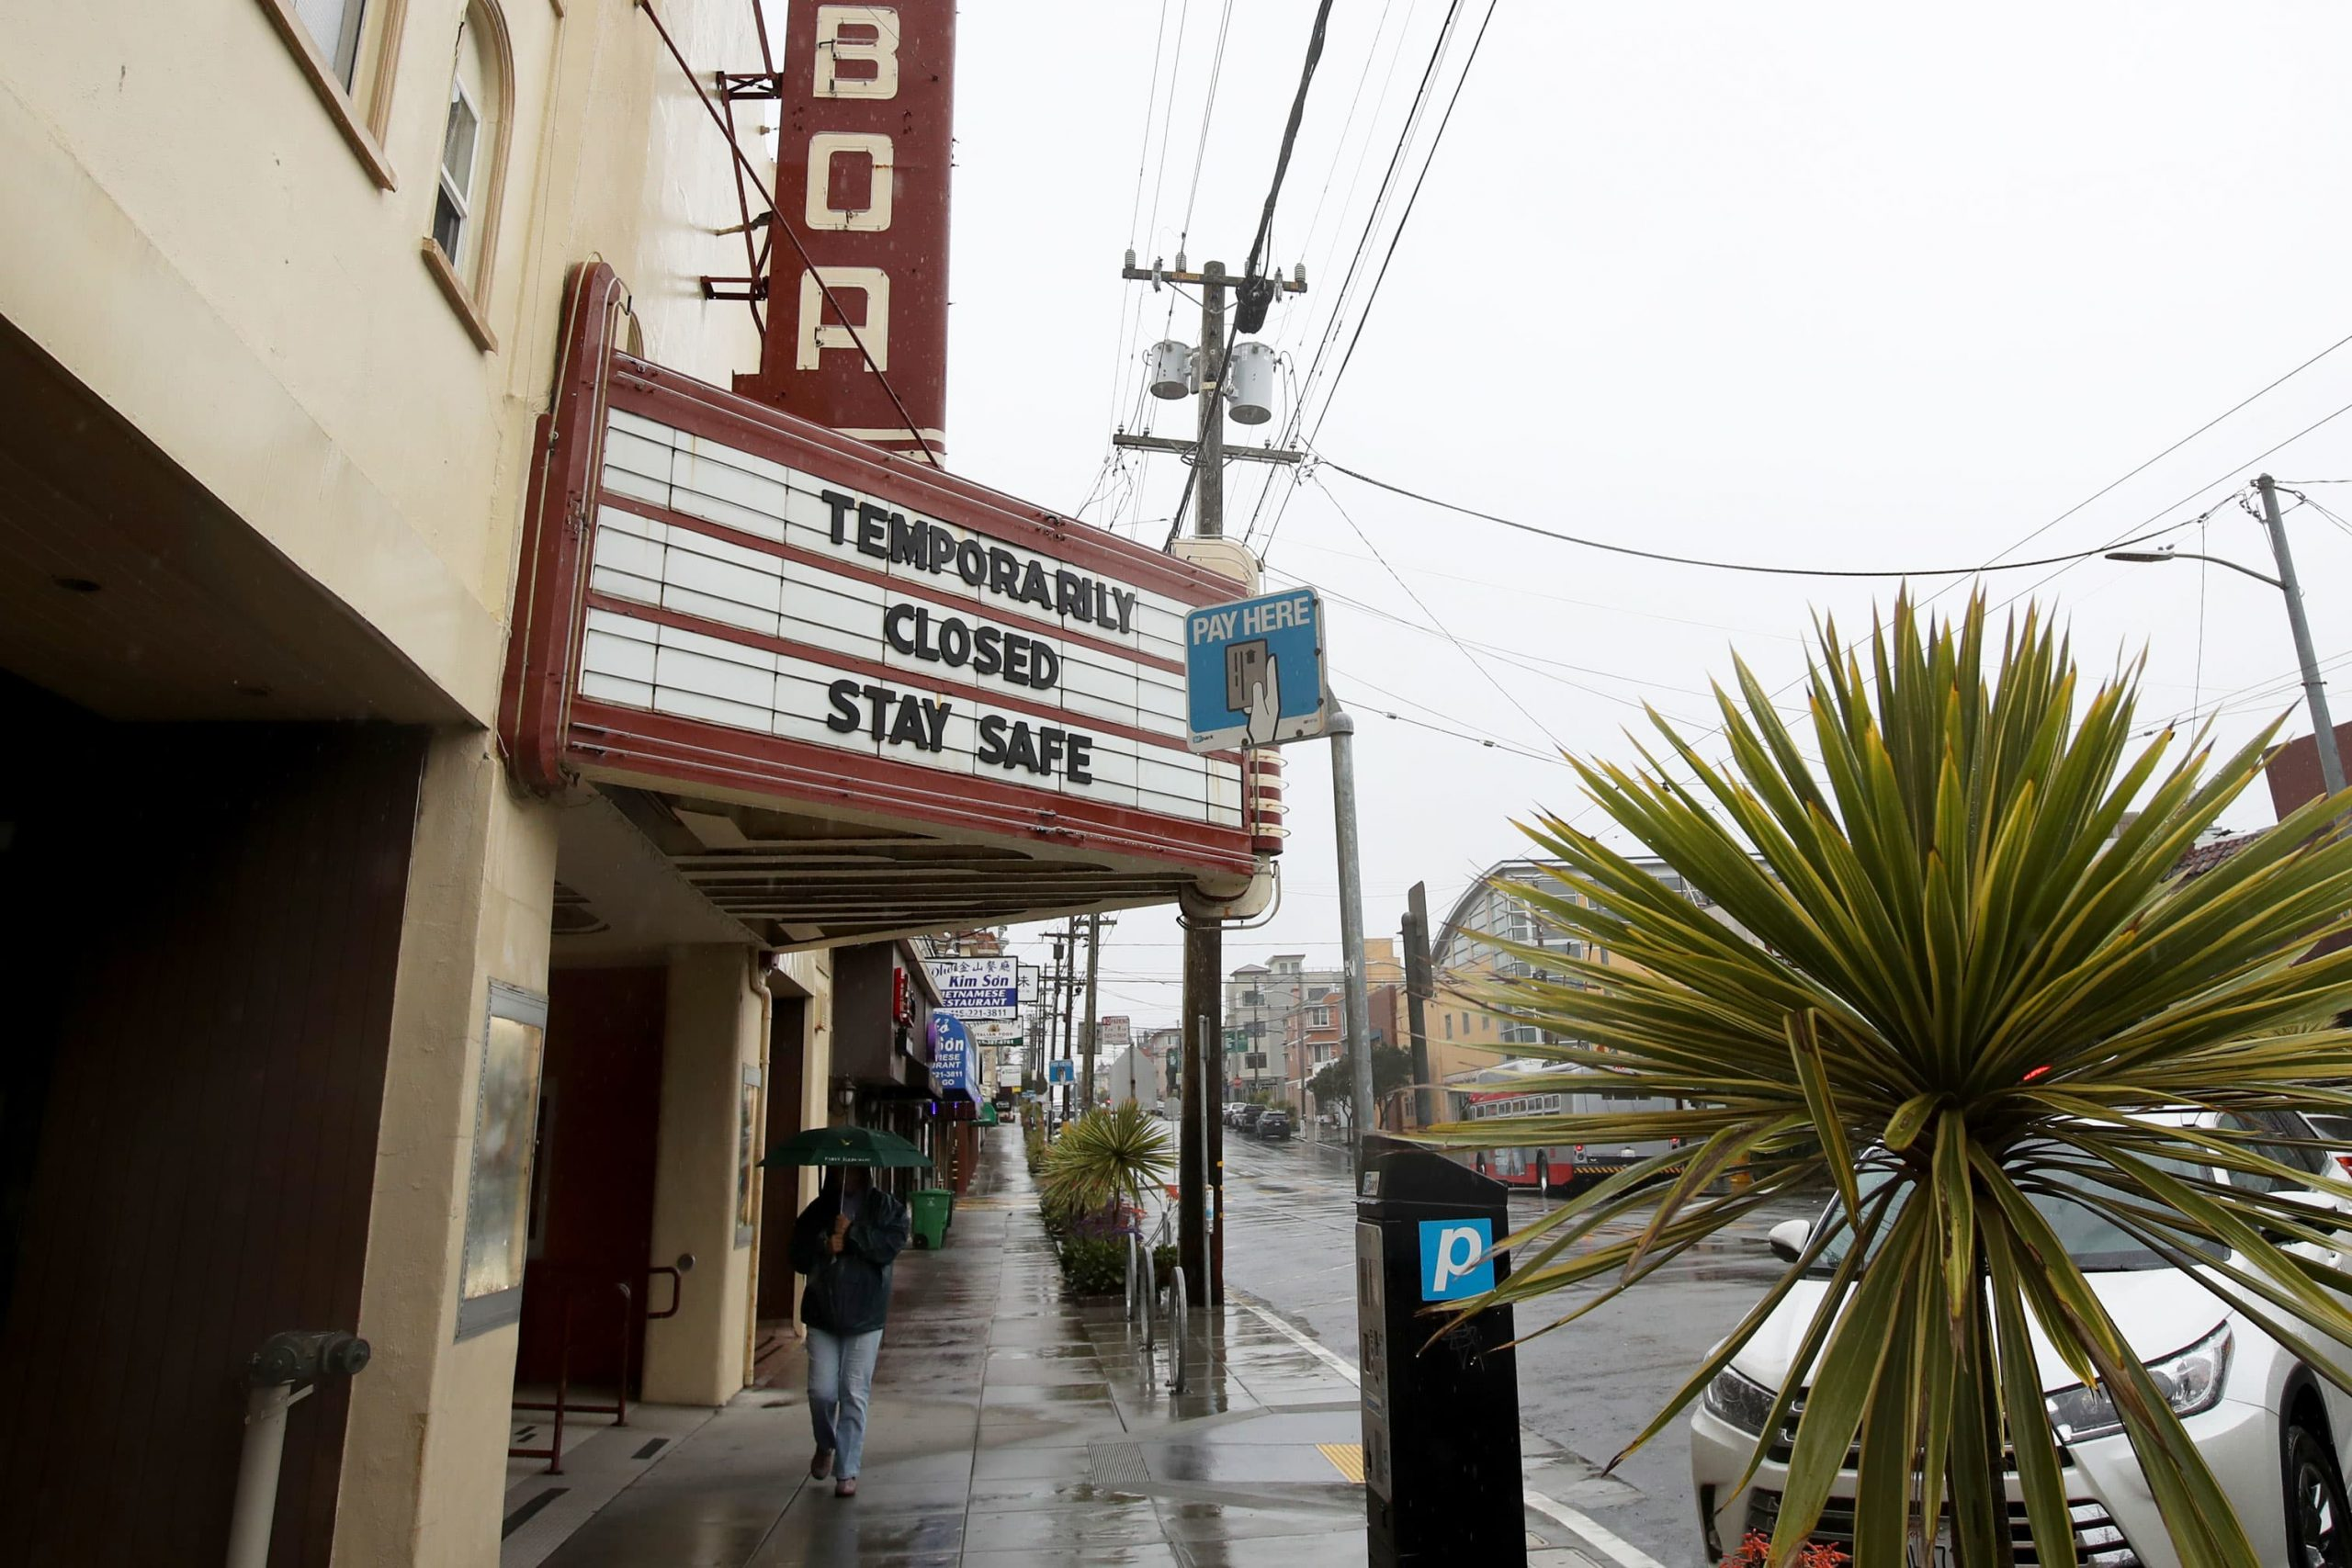 theaters-concert-venues-left-waiting-for-help-after-trump-threat